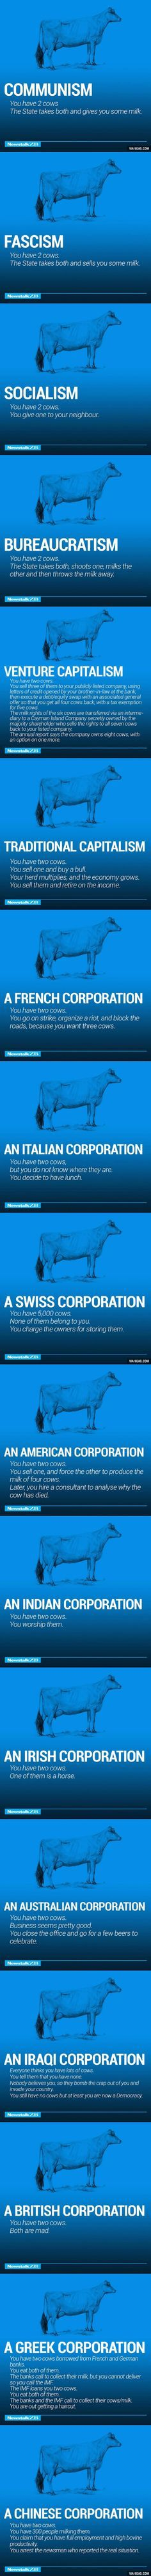 The World's Economy Explained With Just Two Cows - 9GAG